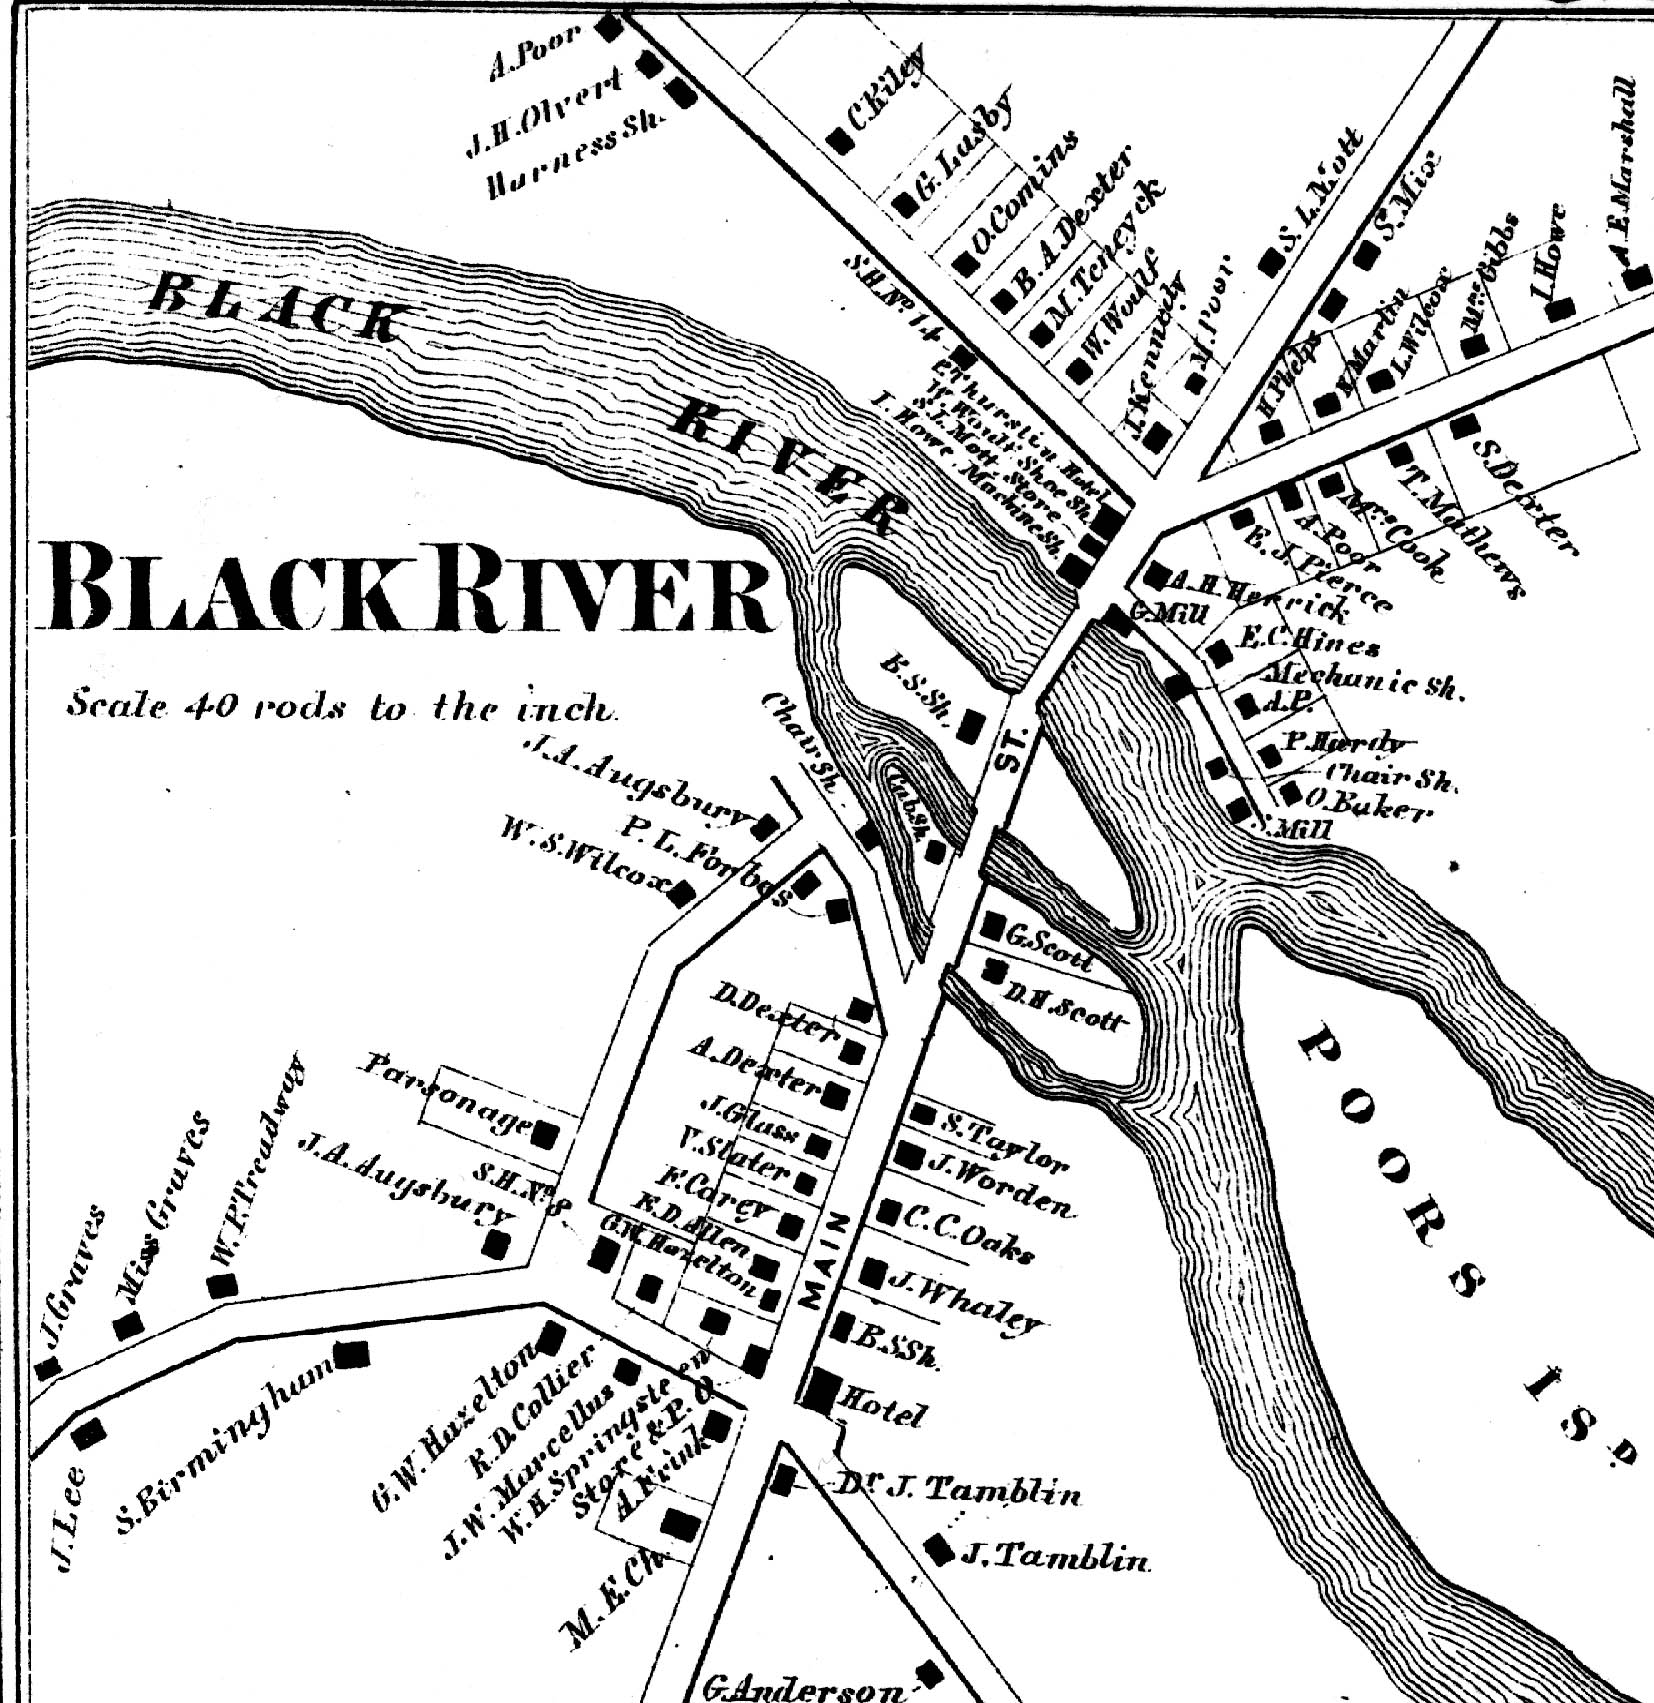 1964 Map of Black River